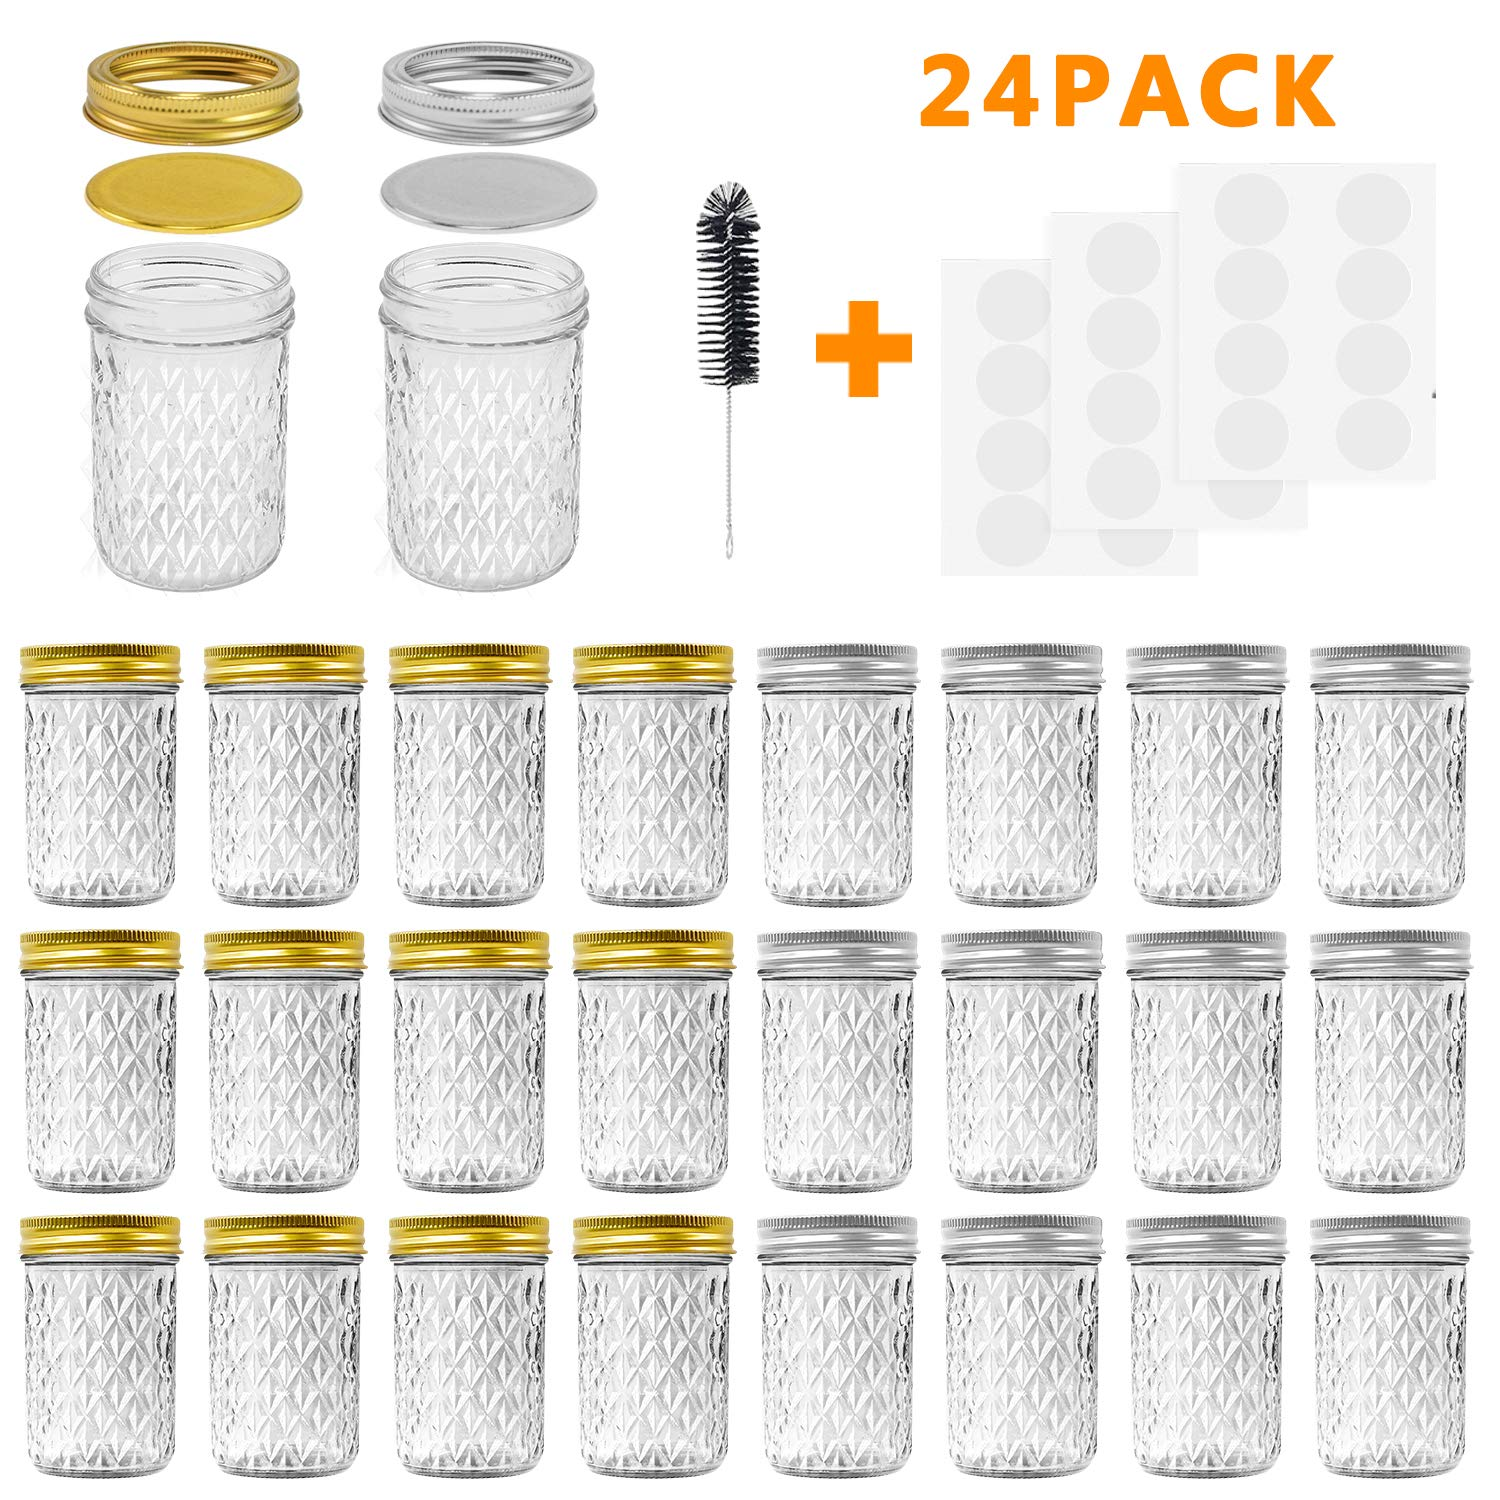 Mason Jars, 8 OZ Mason Jars Canning Jars Jelly Jars With Regular Lids and Bands, Ideal for Jam, Honey, Wedding Favors, Shower Favors, Baby Foods, DIY Magnetic Spice Jars, 24 Pack By SPANLA